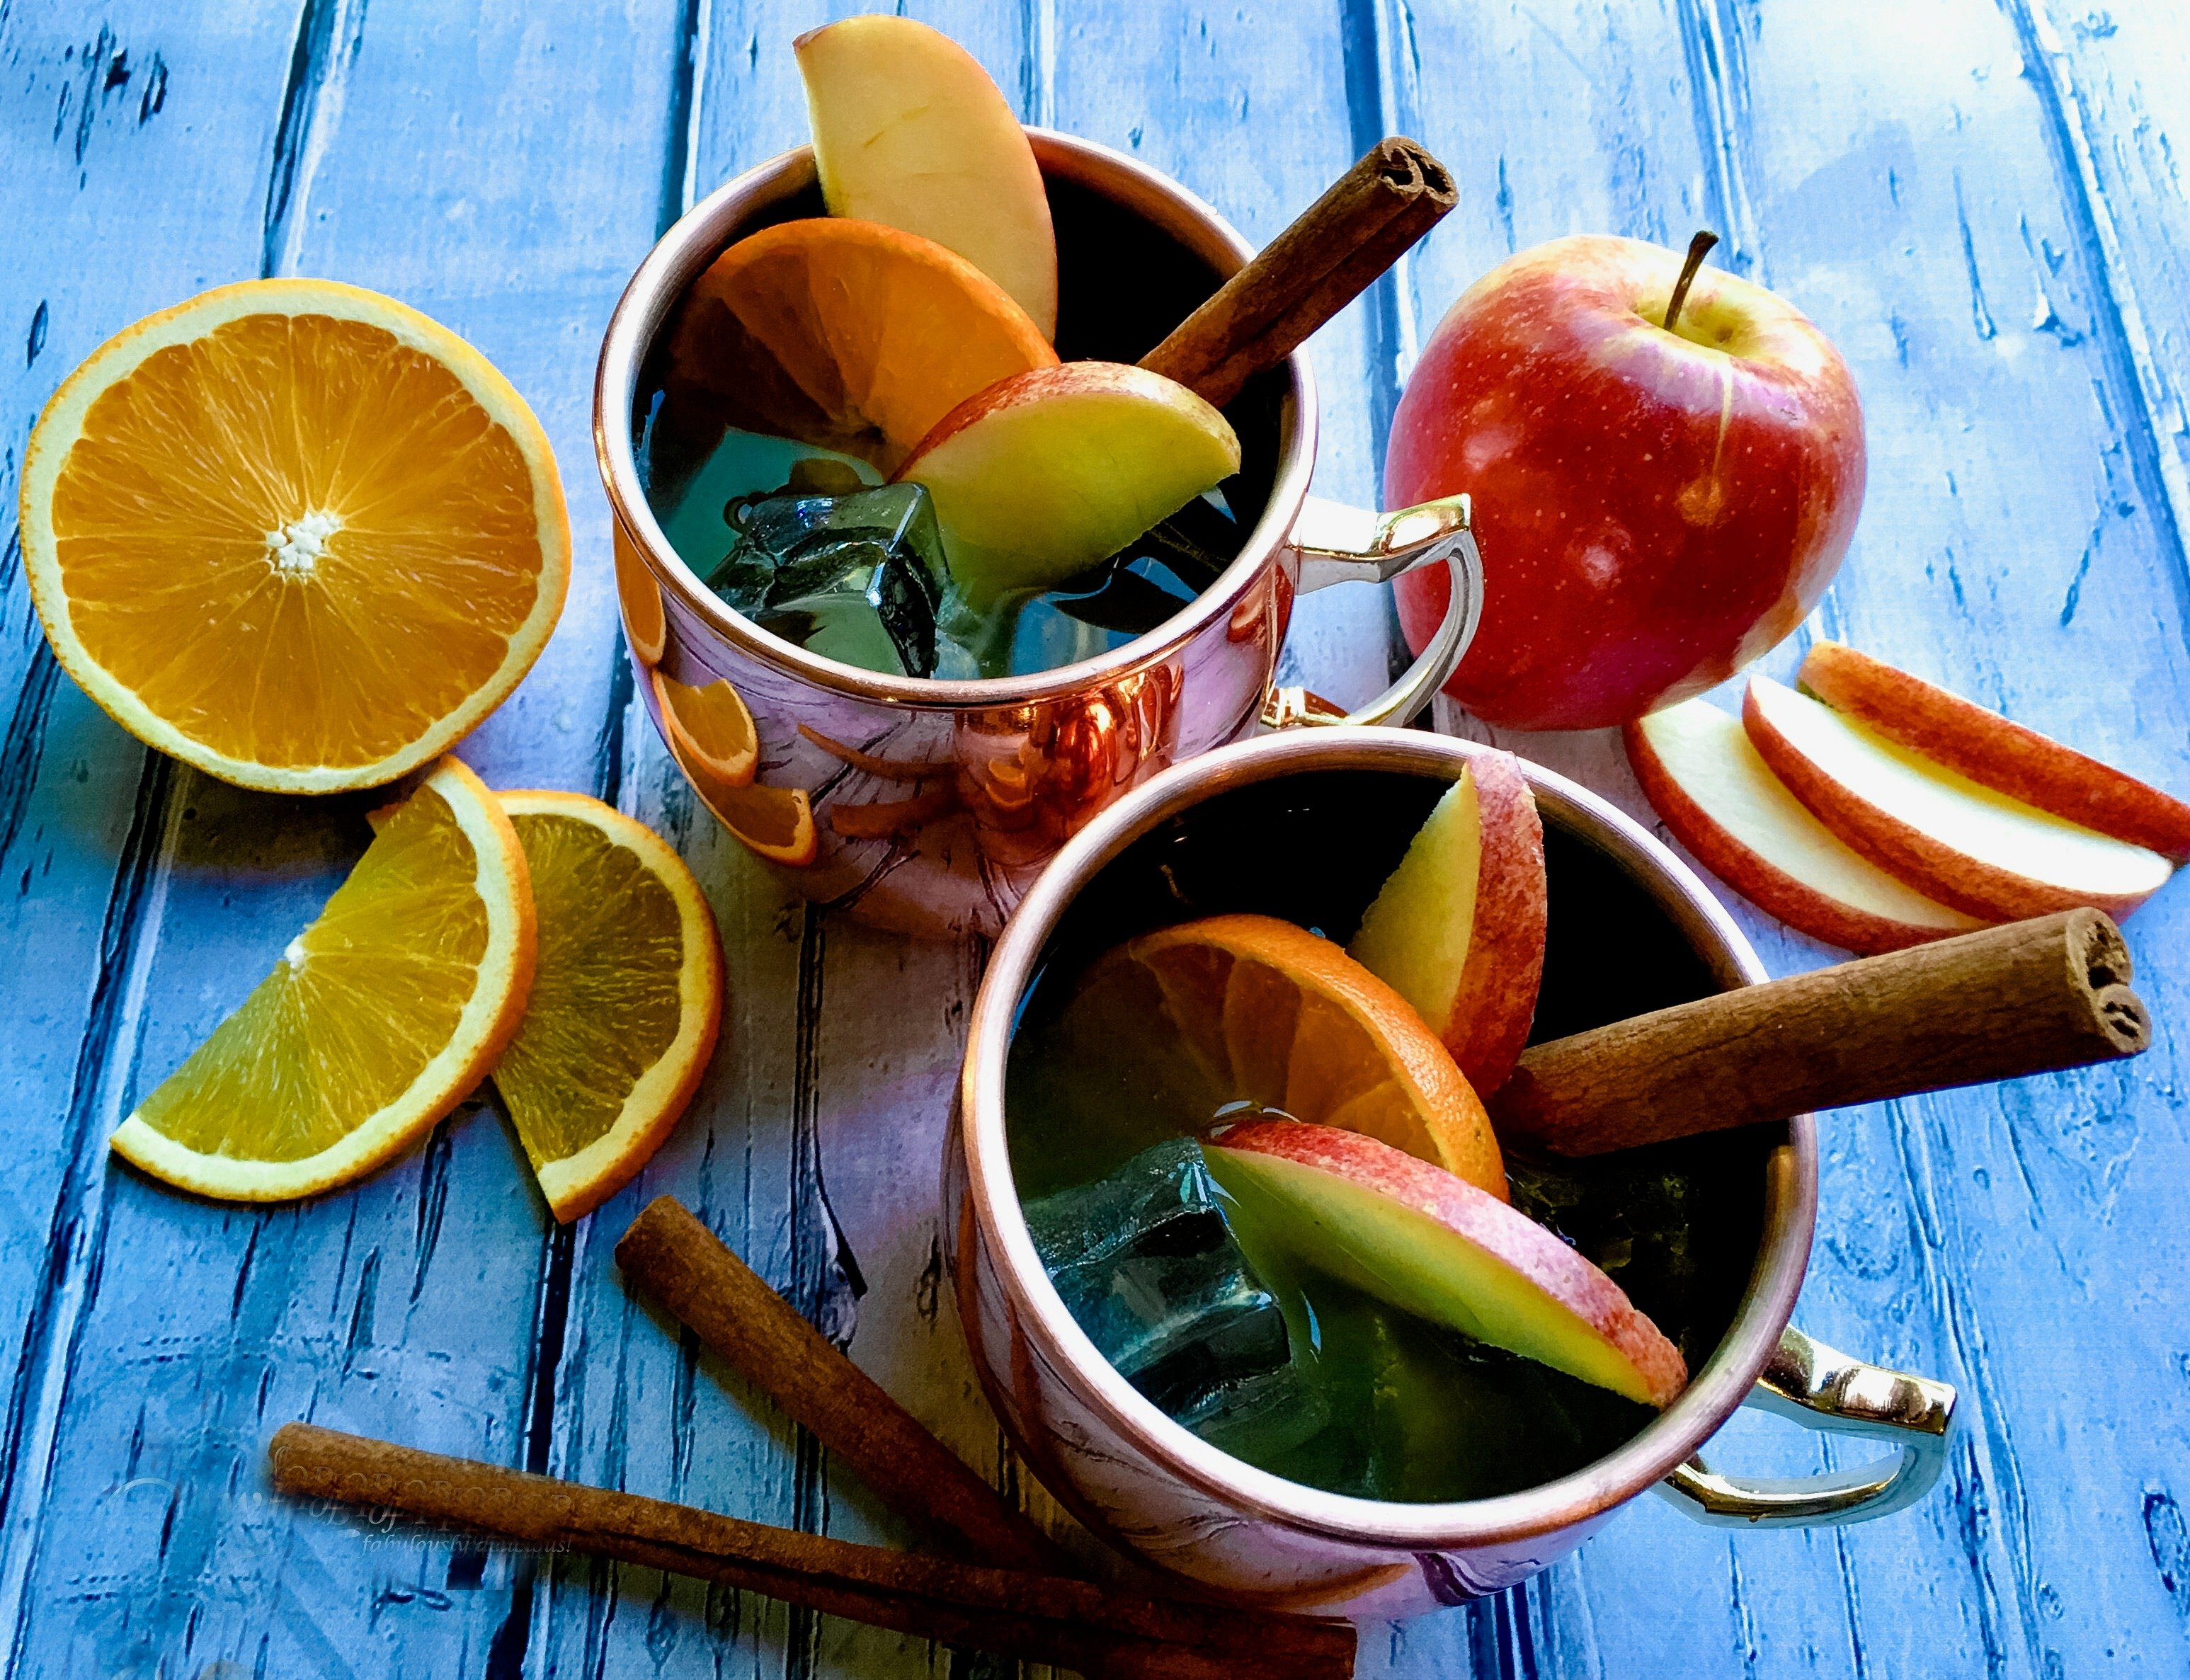 Apple Cider Moscow Mules with fruit